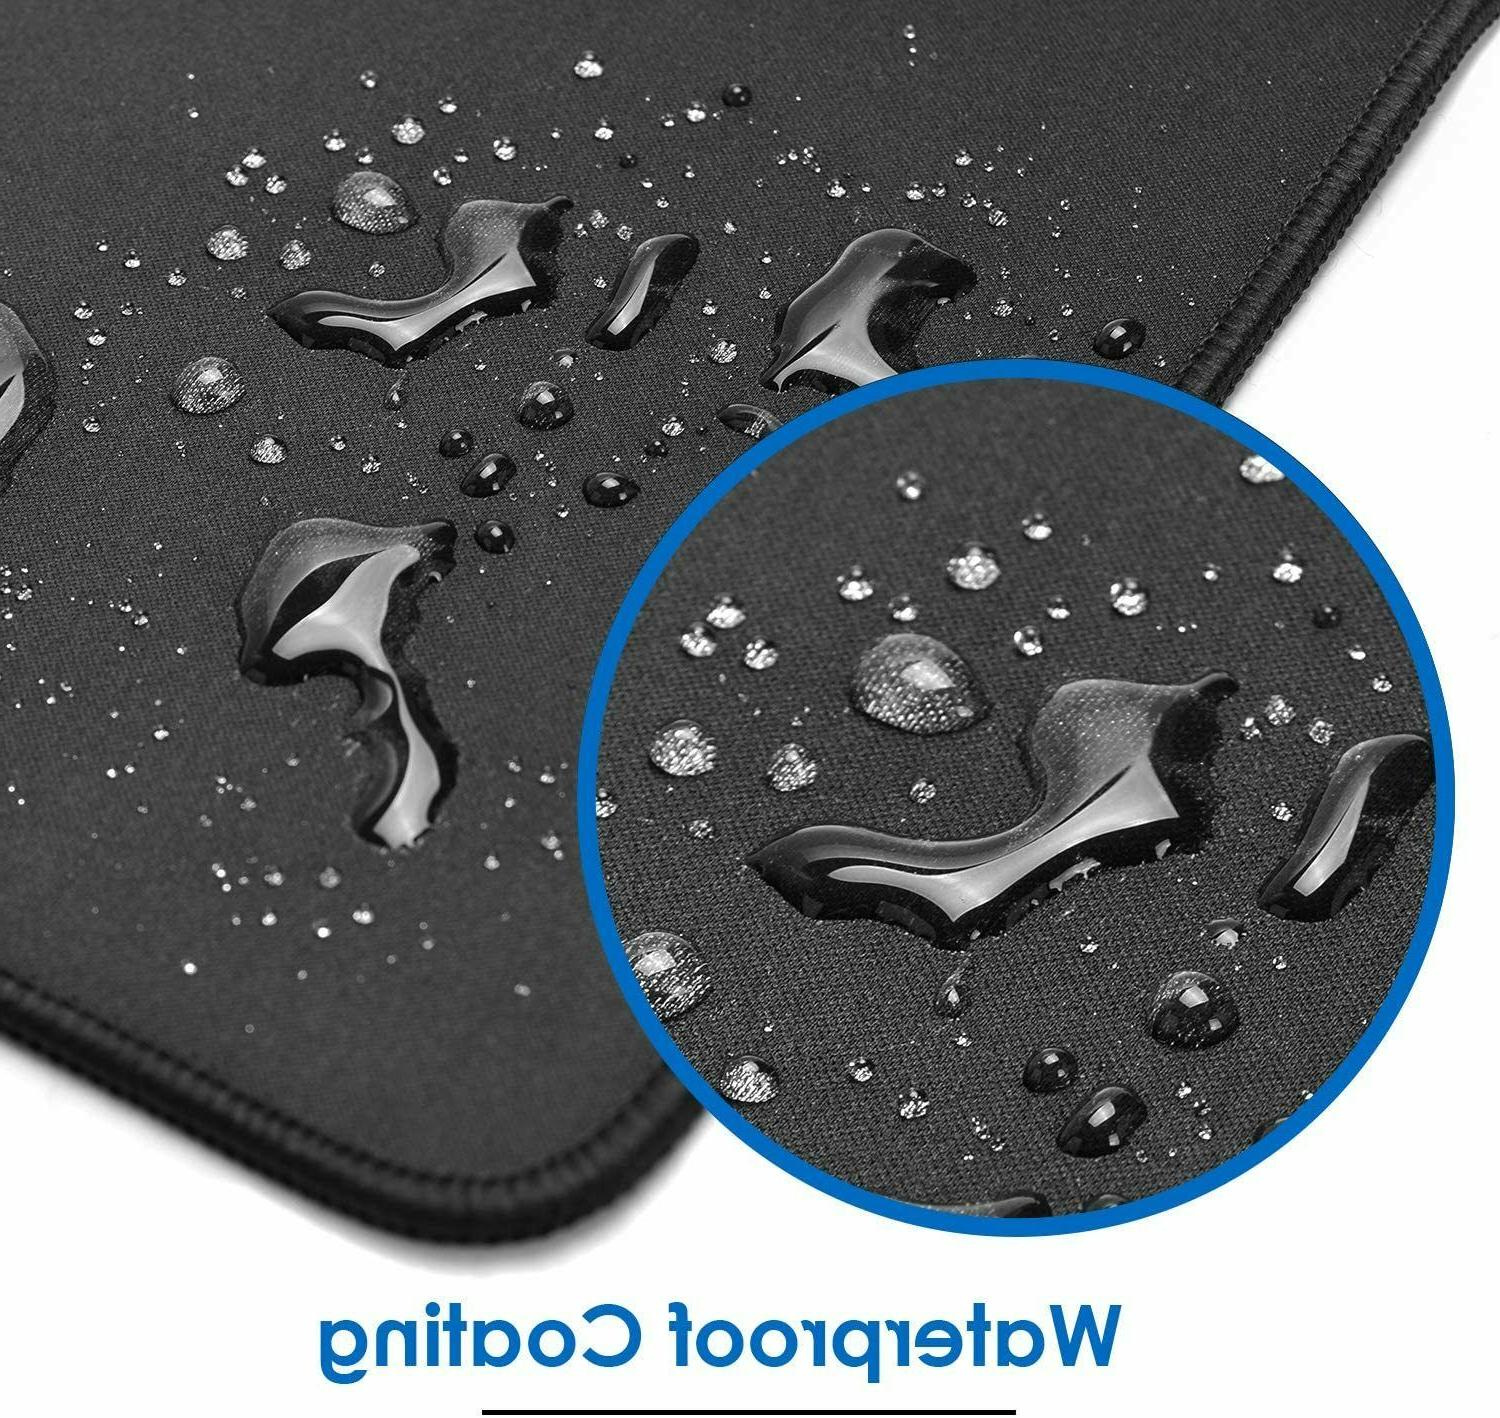 Mouse Pad Non-Slip Waterproof PC